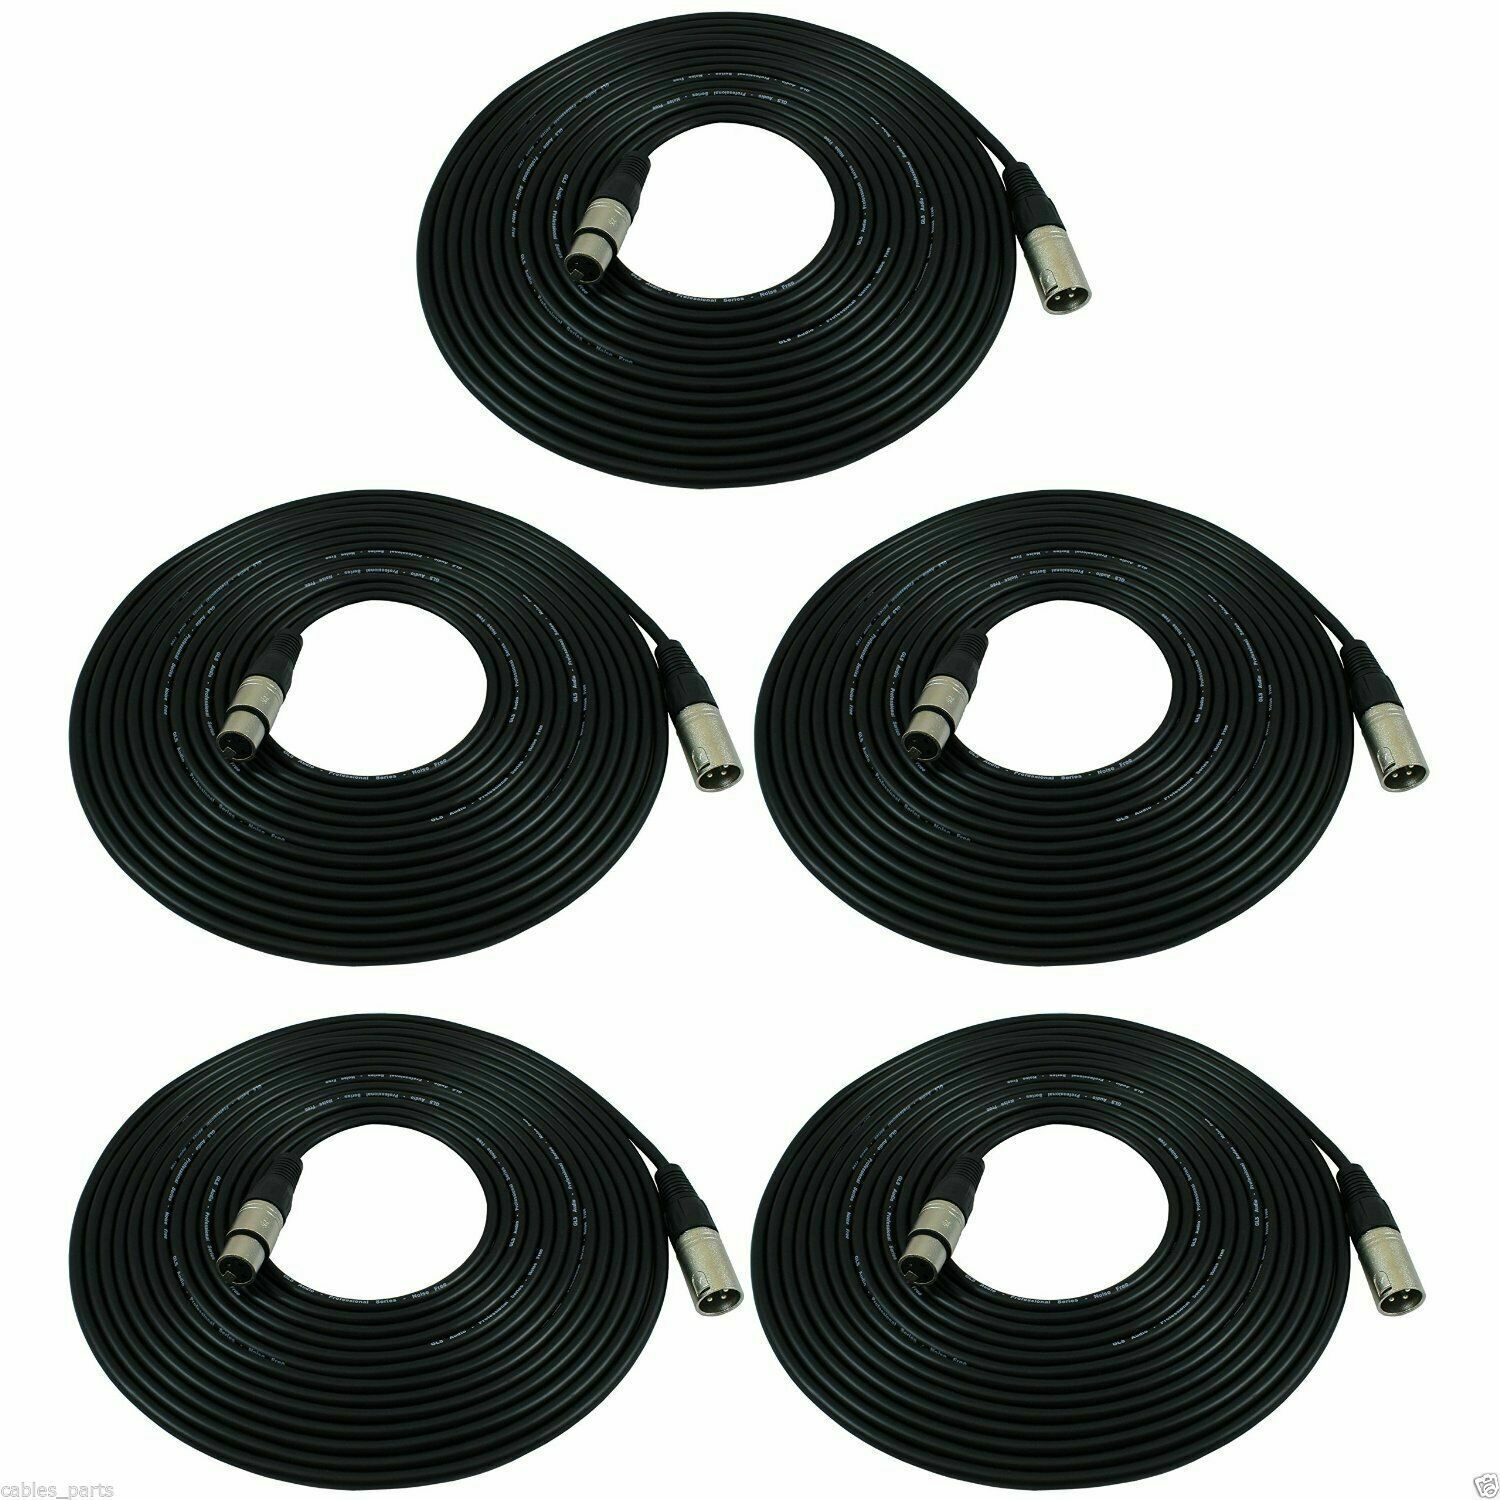 5pcs 25 Ft 25FT xlr male female 3pin MIC Shielded Cable microphone audio cord bk. Buy it now for 25.99